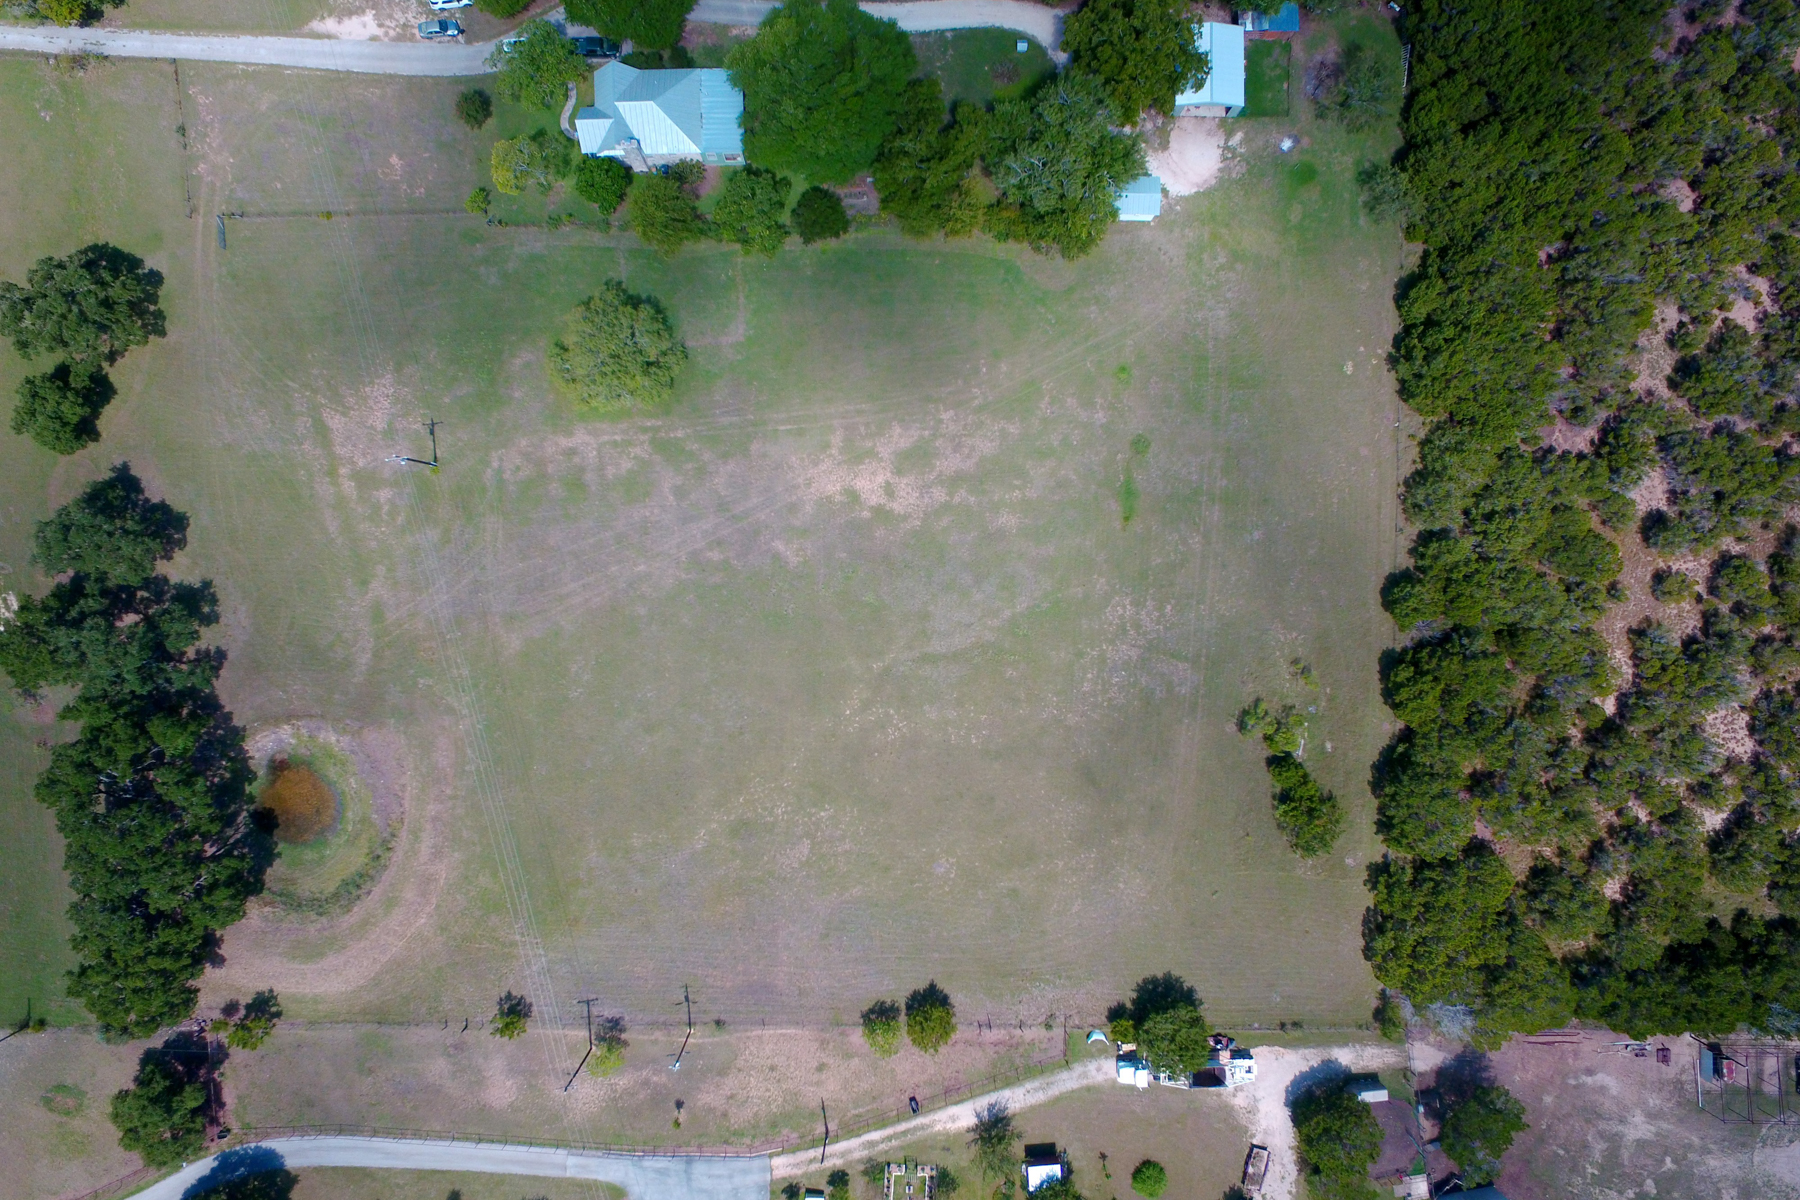 Land for Sale at 3.21 Acre Lot in N. Barcroft Estates 29158 State Highway 46 W Spring Branch, Texas 78070 United States